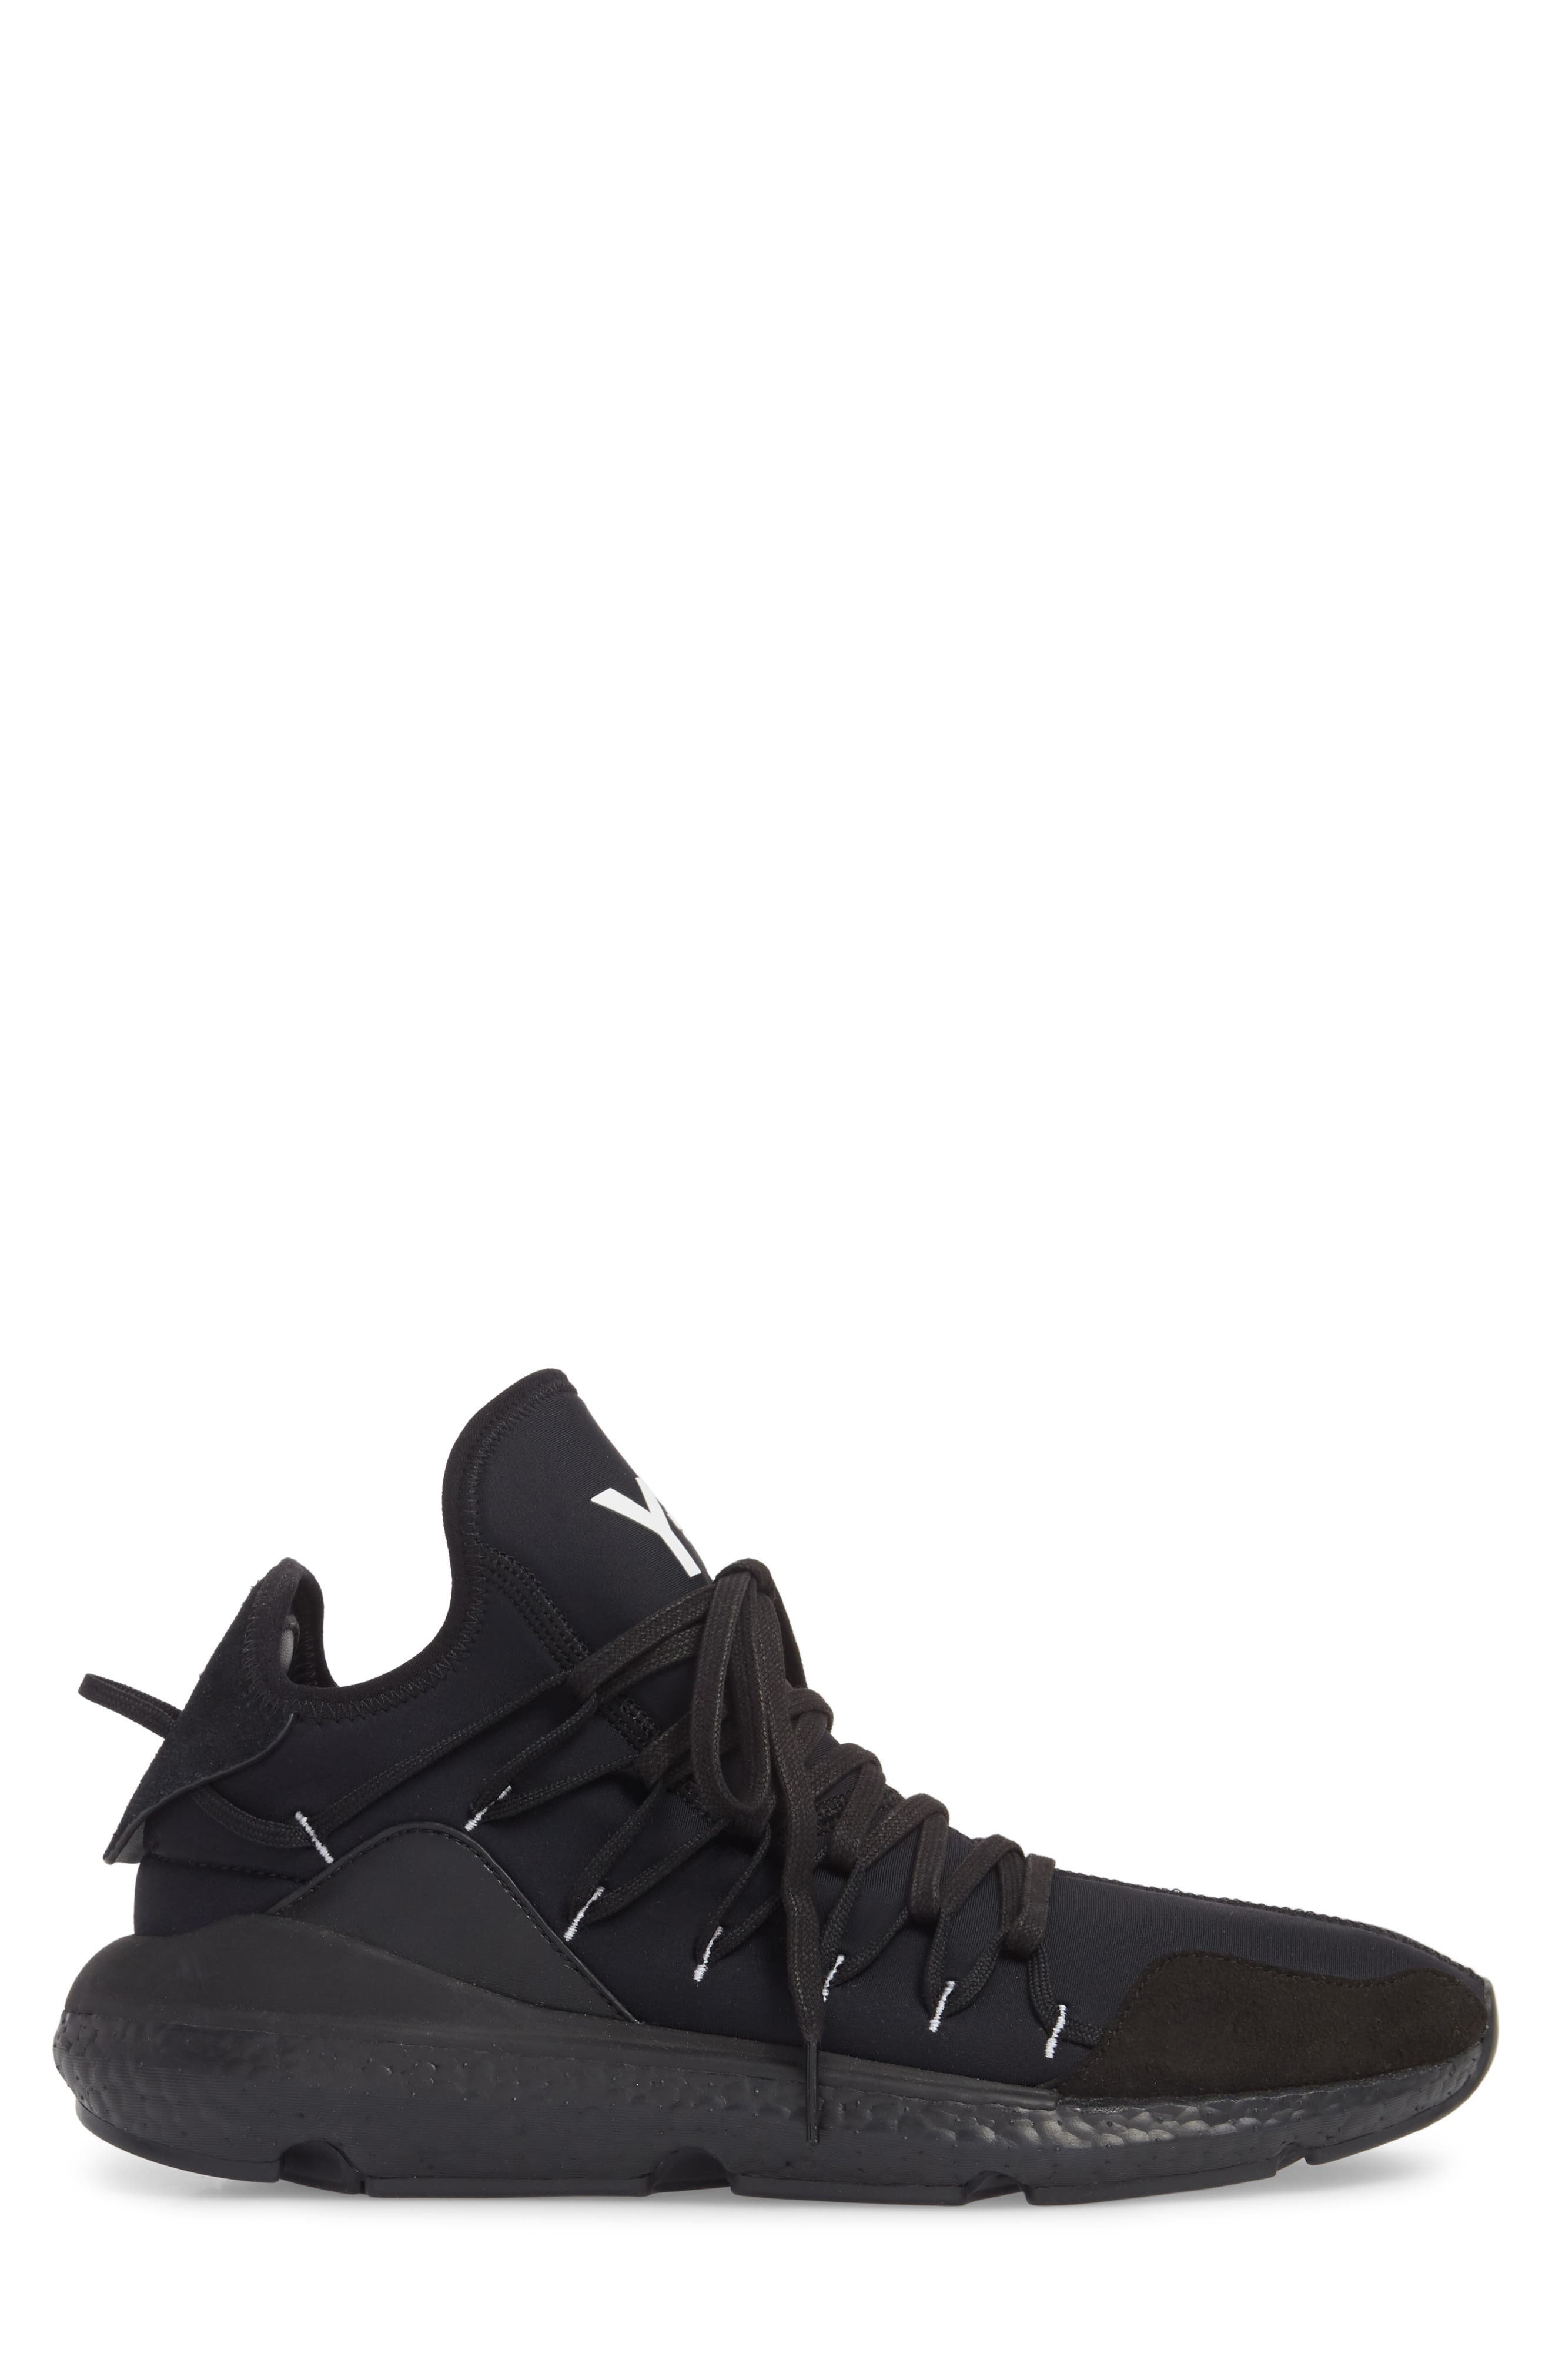 x adidas Kusari Sneaker,                             Alternate thumbnail 5, color,                             Black/Black